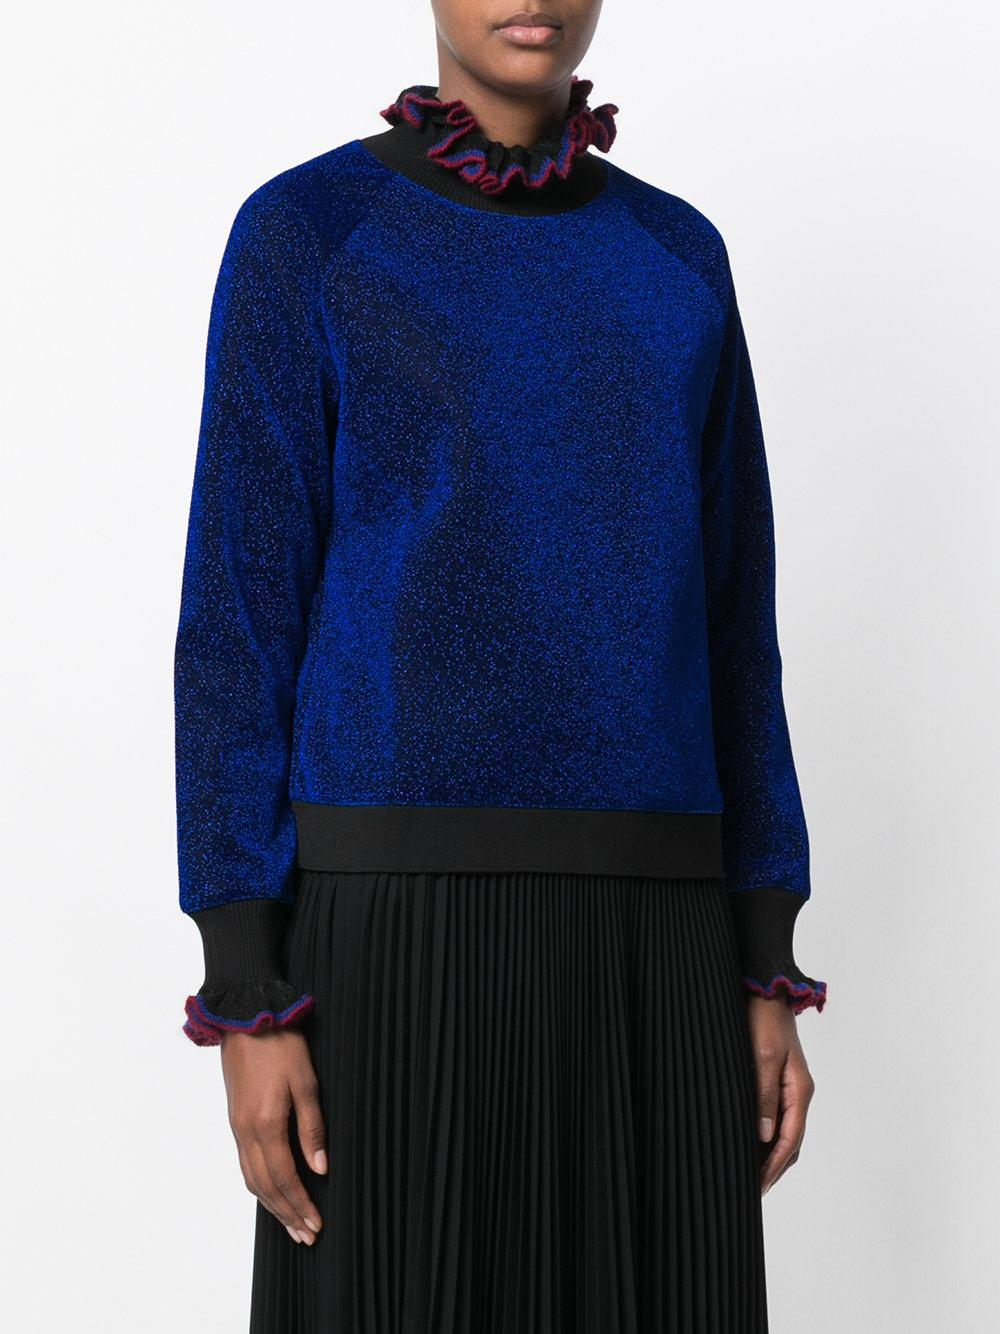 Essentiel antwerp Glitter Ruffle Jumper in Blue | Lyst